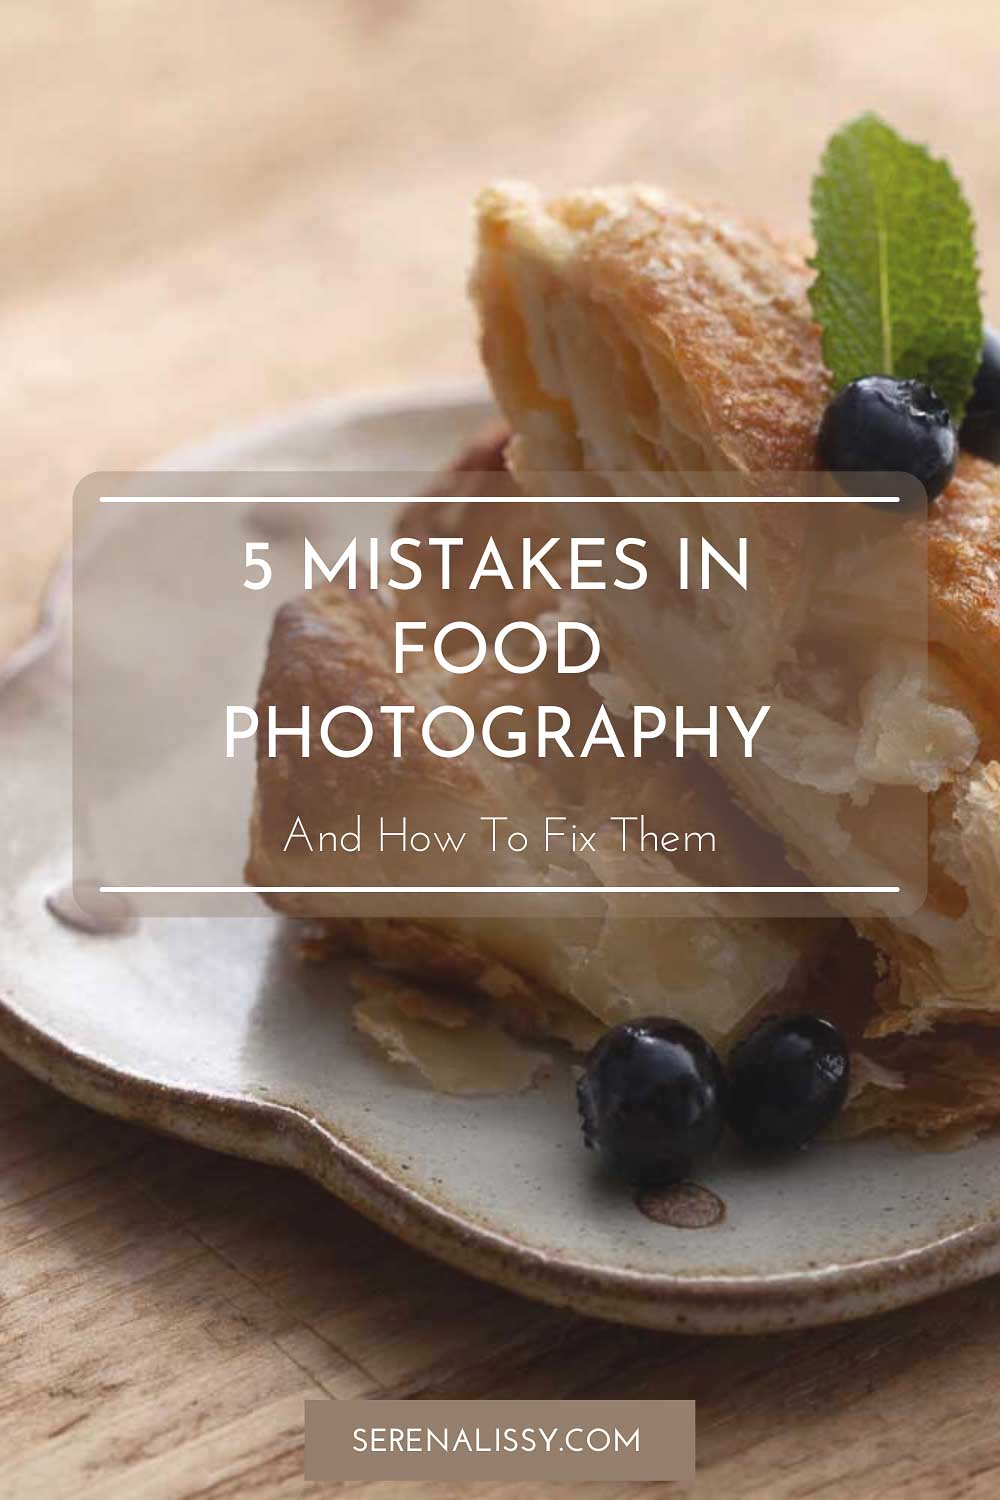 Pastry on Plate showing photography mistake